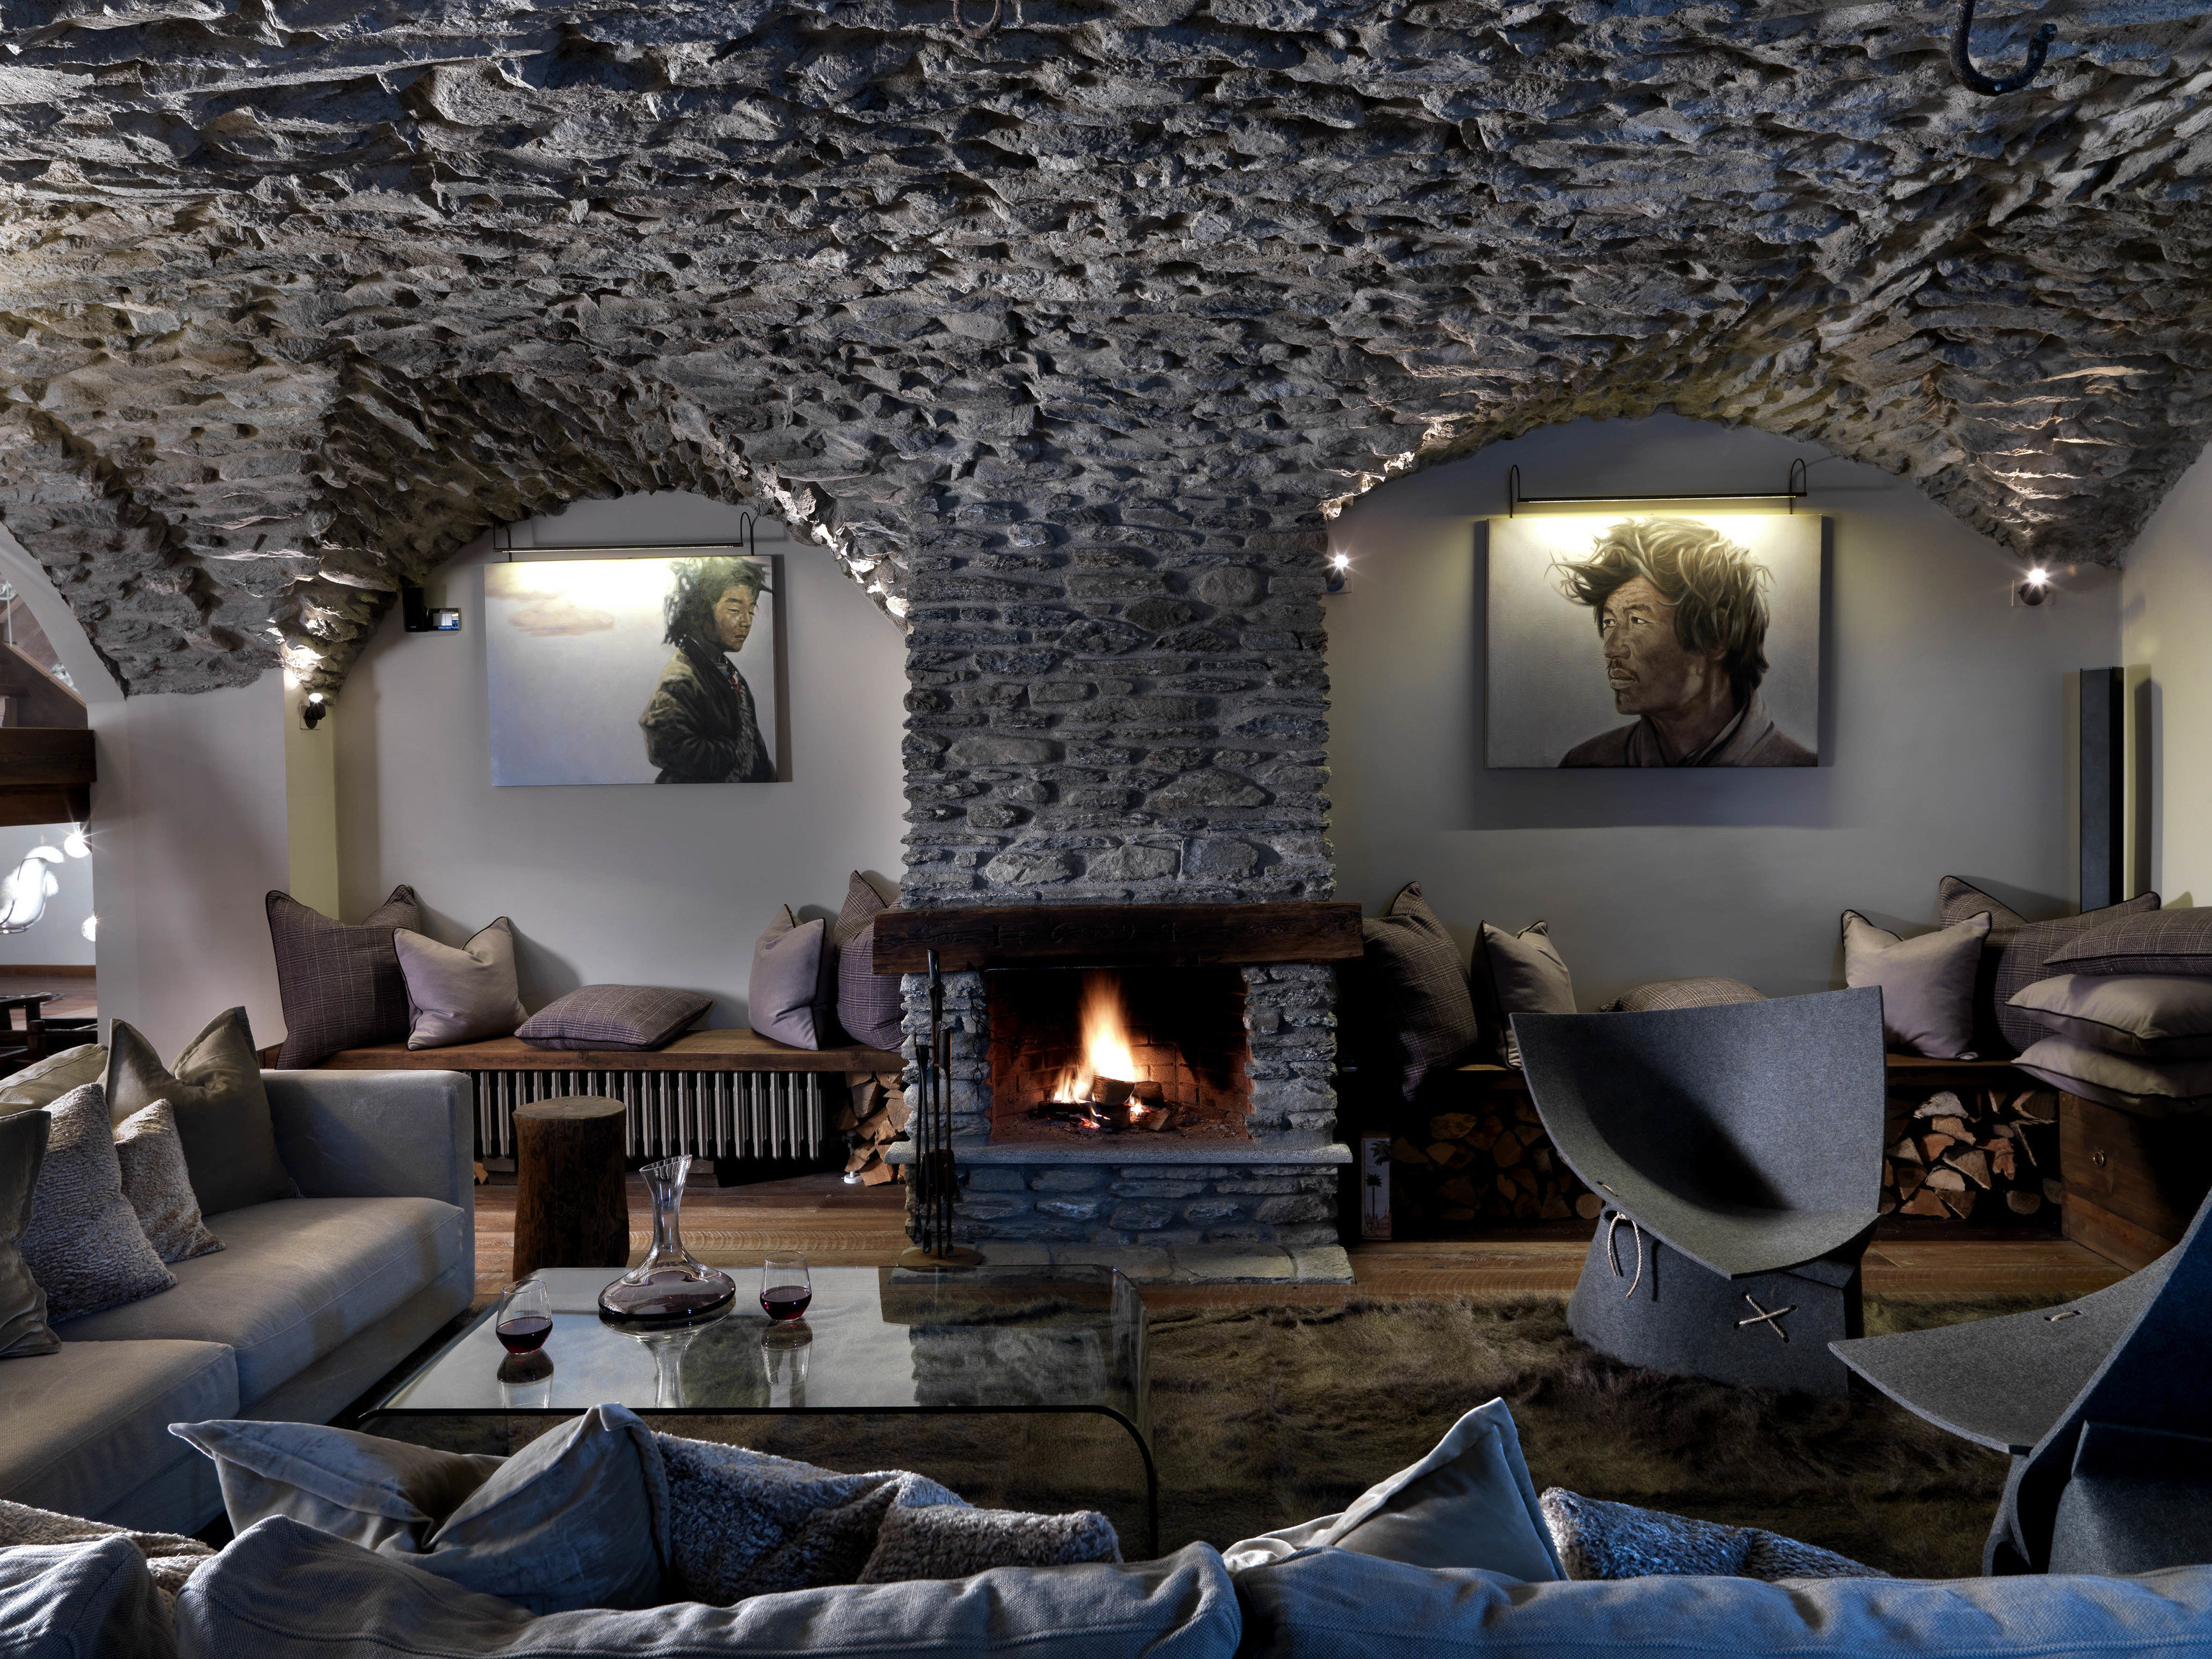 Hotels Luxury Travel Mountains + Skiing Living indoor wall Fireplace room fire living room property home house hearth stone estate interior design cottage lighting furniture Design area